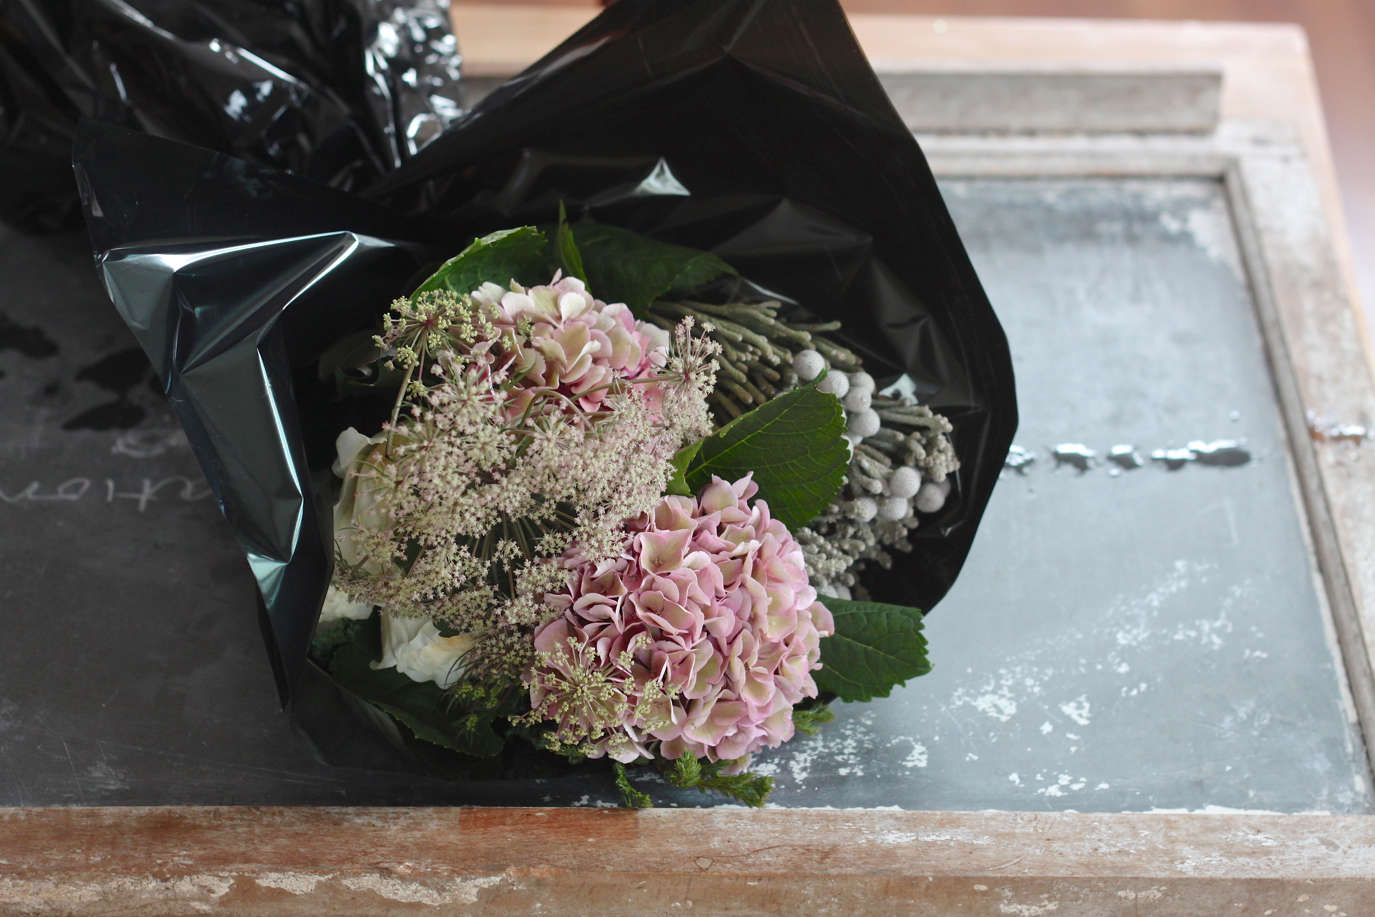 Winter  20  Romance  20  Bouquet  40    20  hydrangea  90  s  20  and  20  chocolate  20  queen  20  annes  20  lace